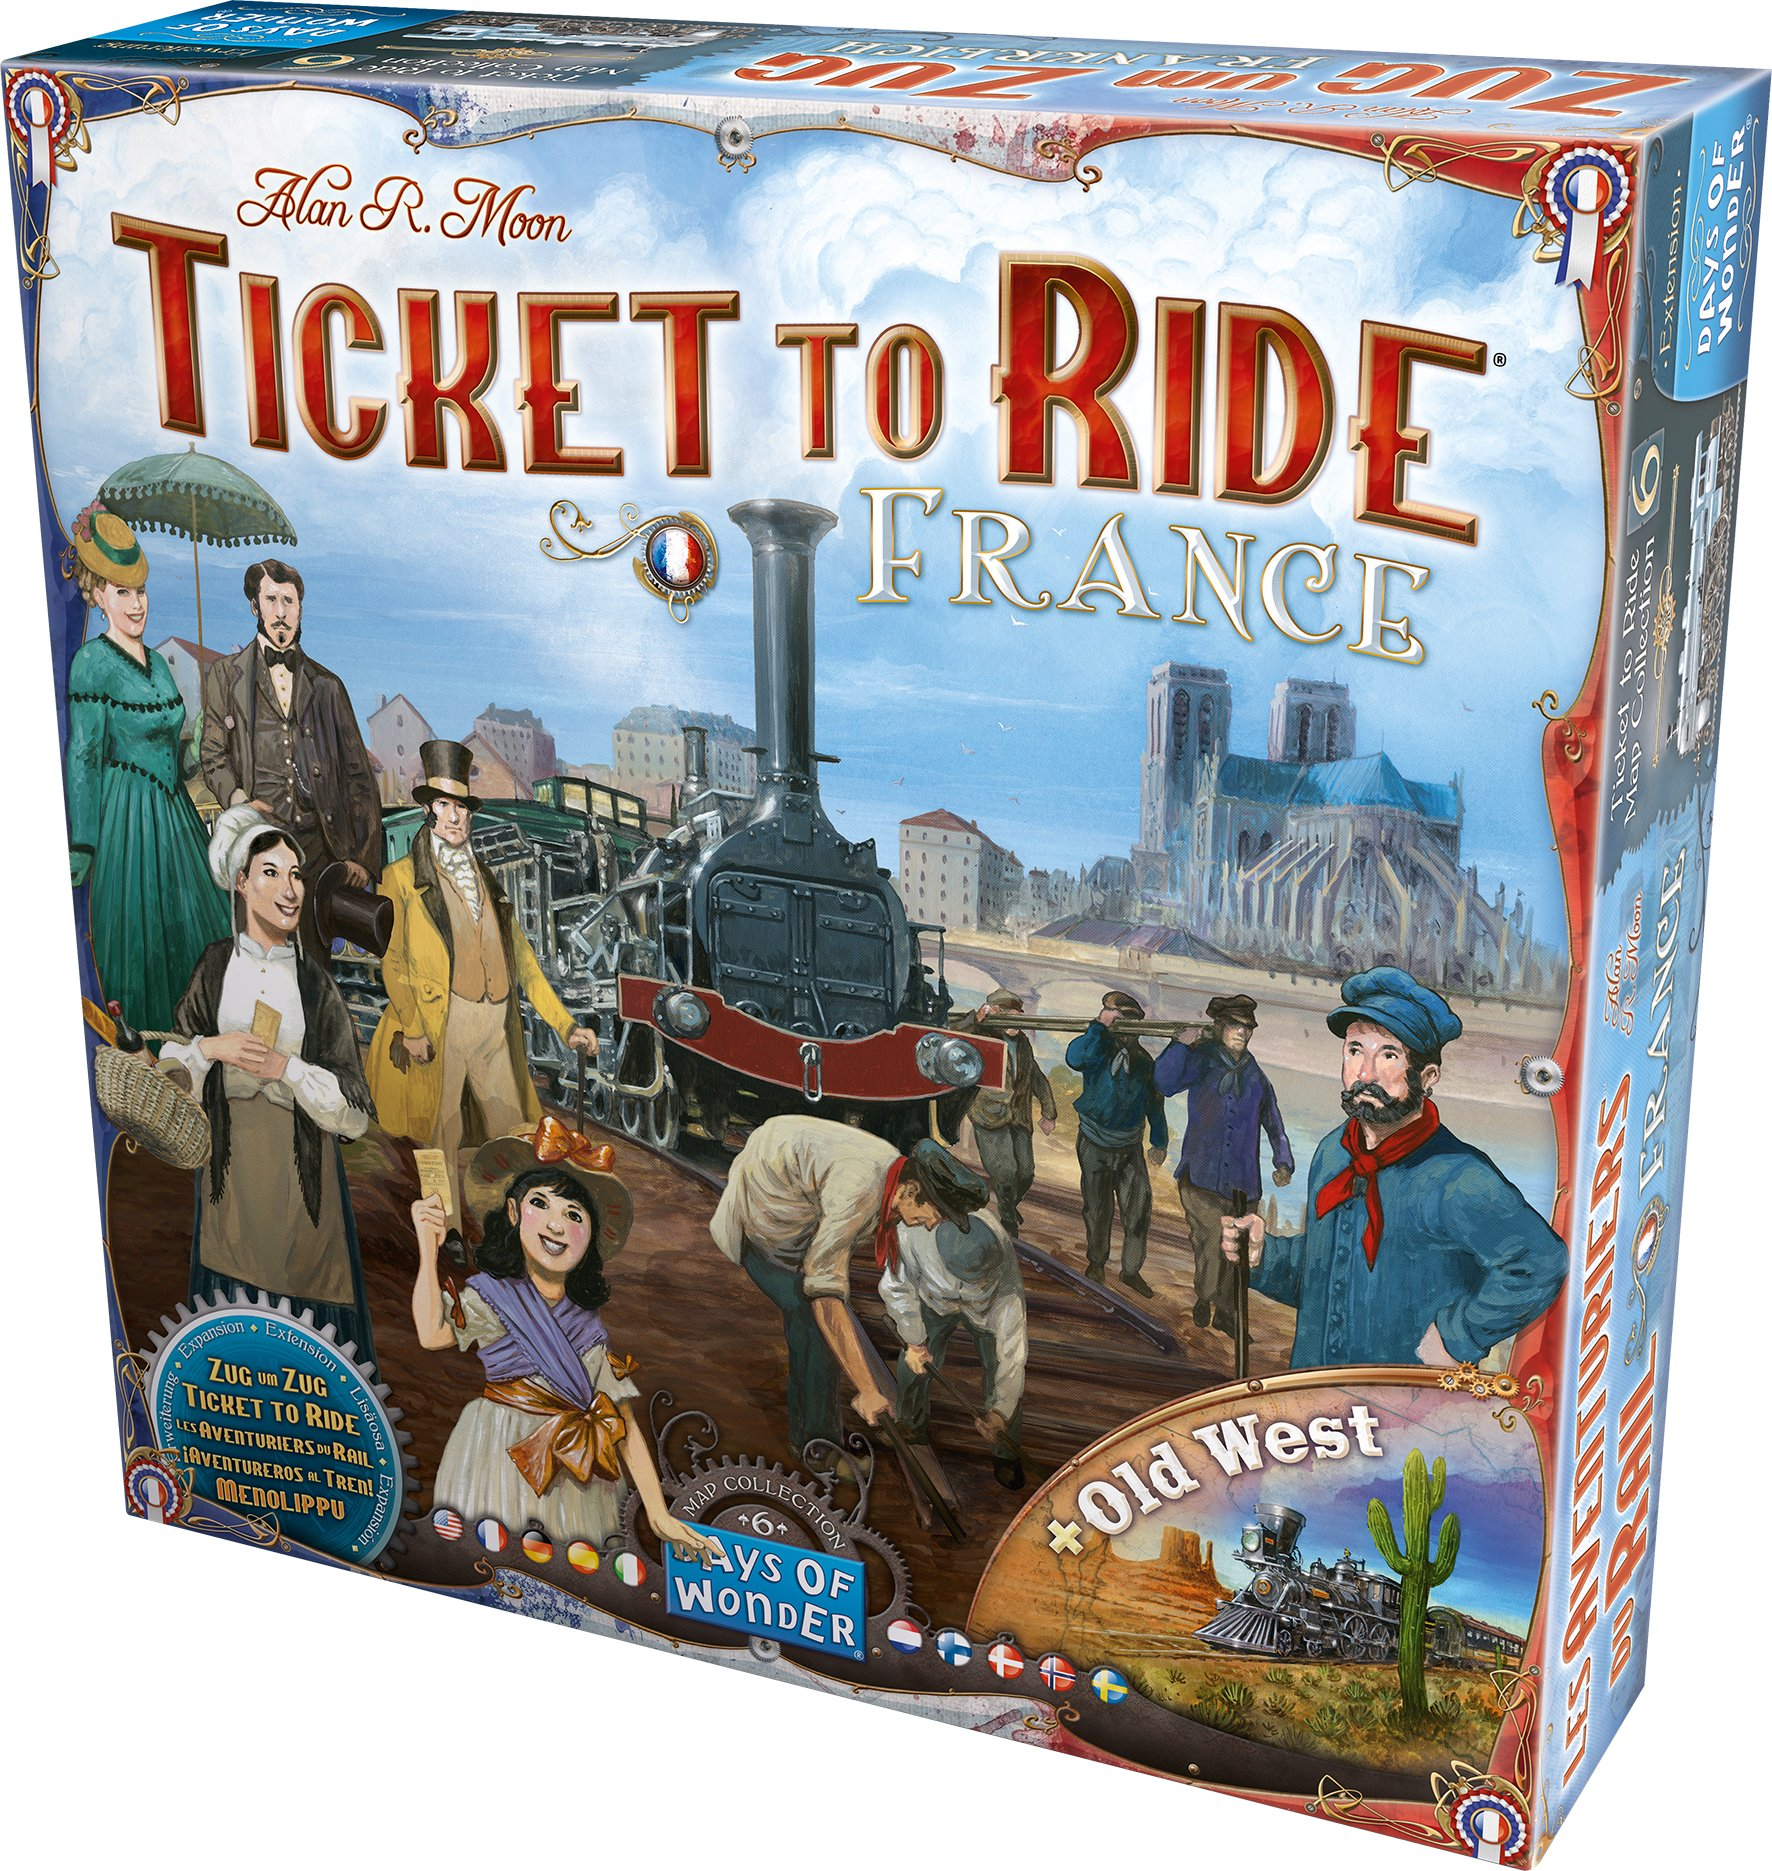 Ticket to Ride: France and Old West Map Collection Six by Days of Wonder (Image #2)